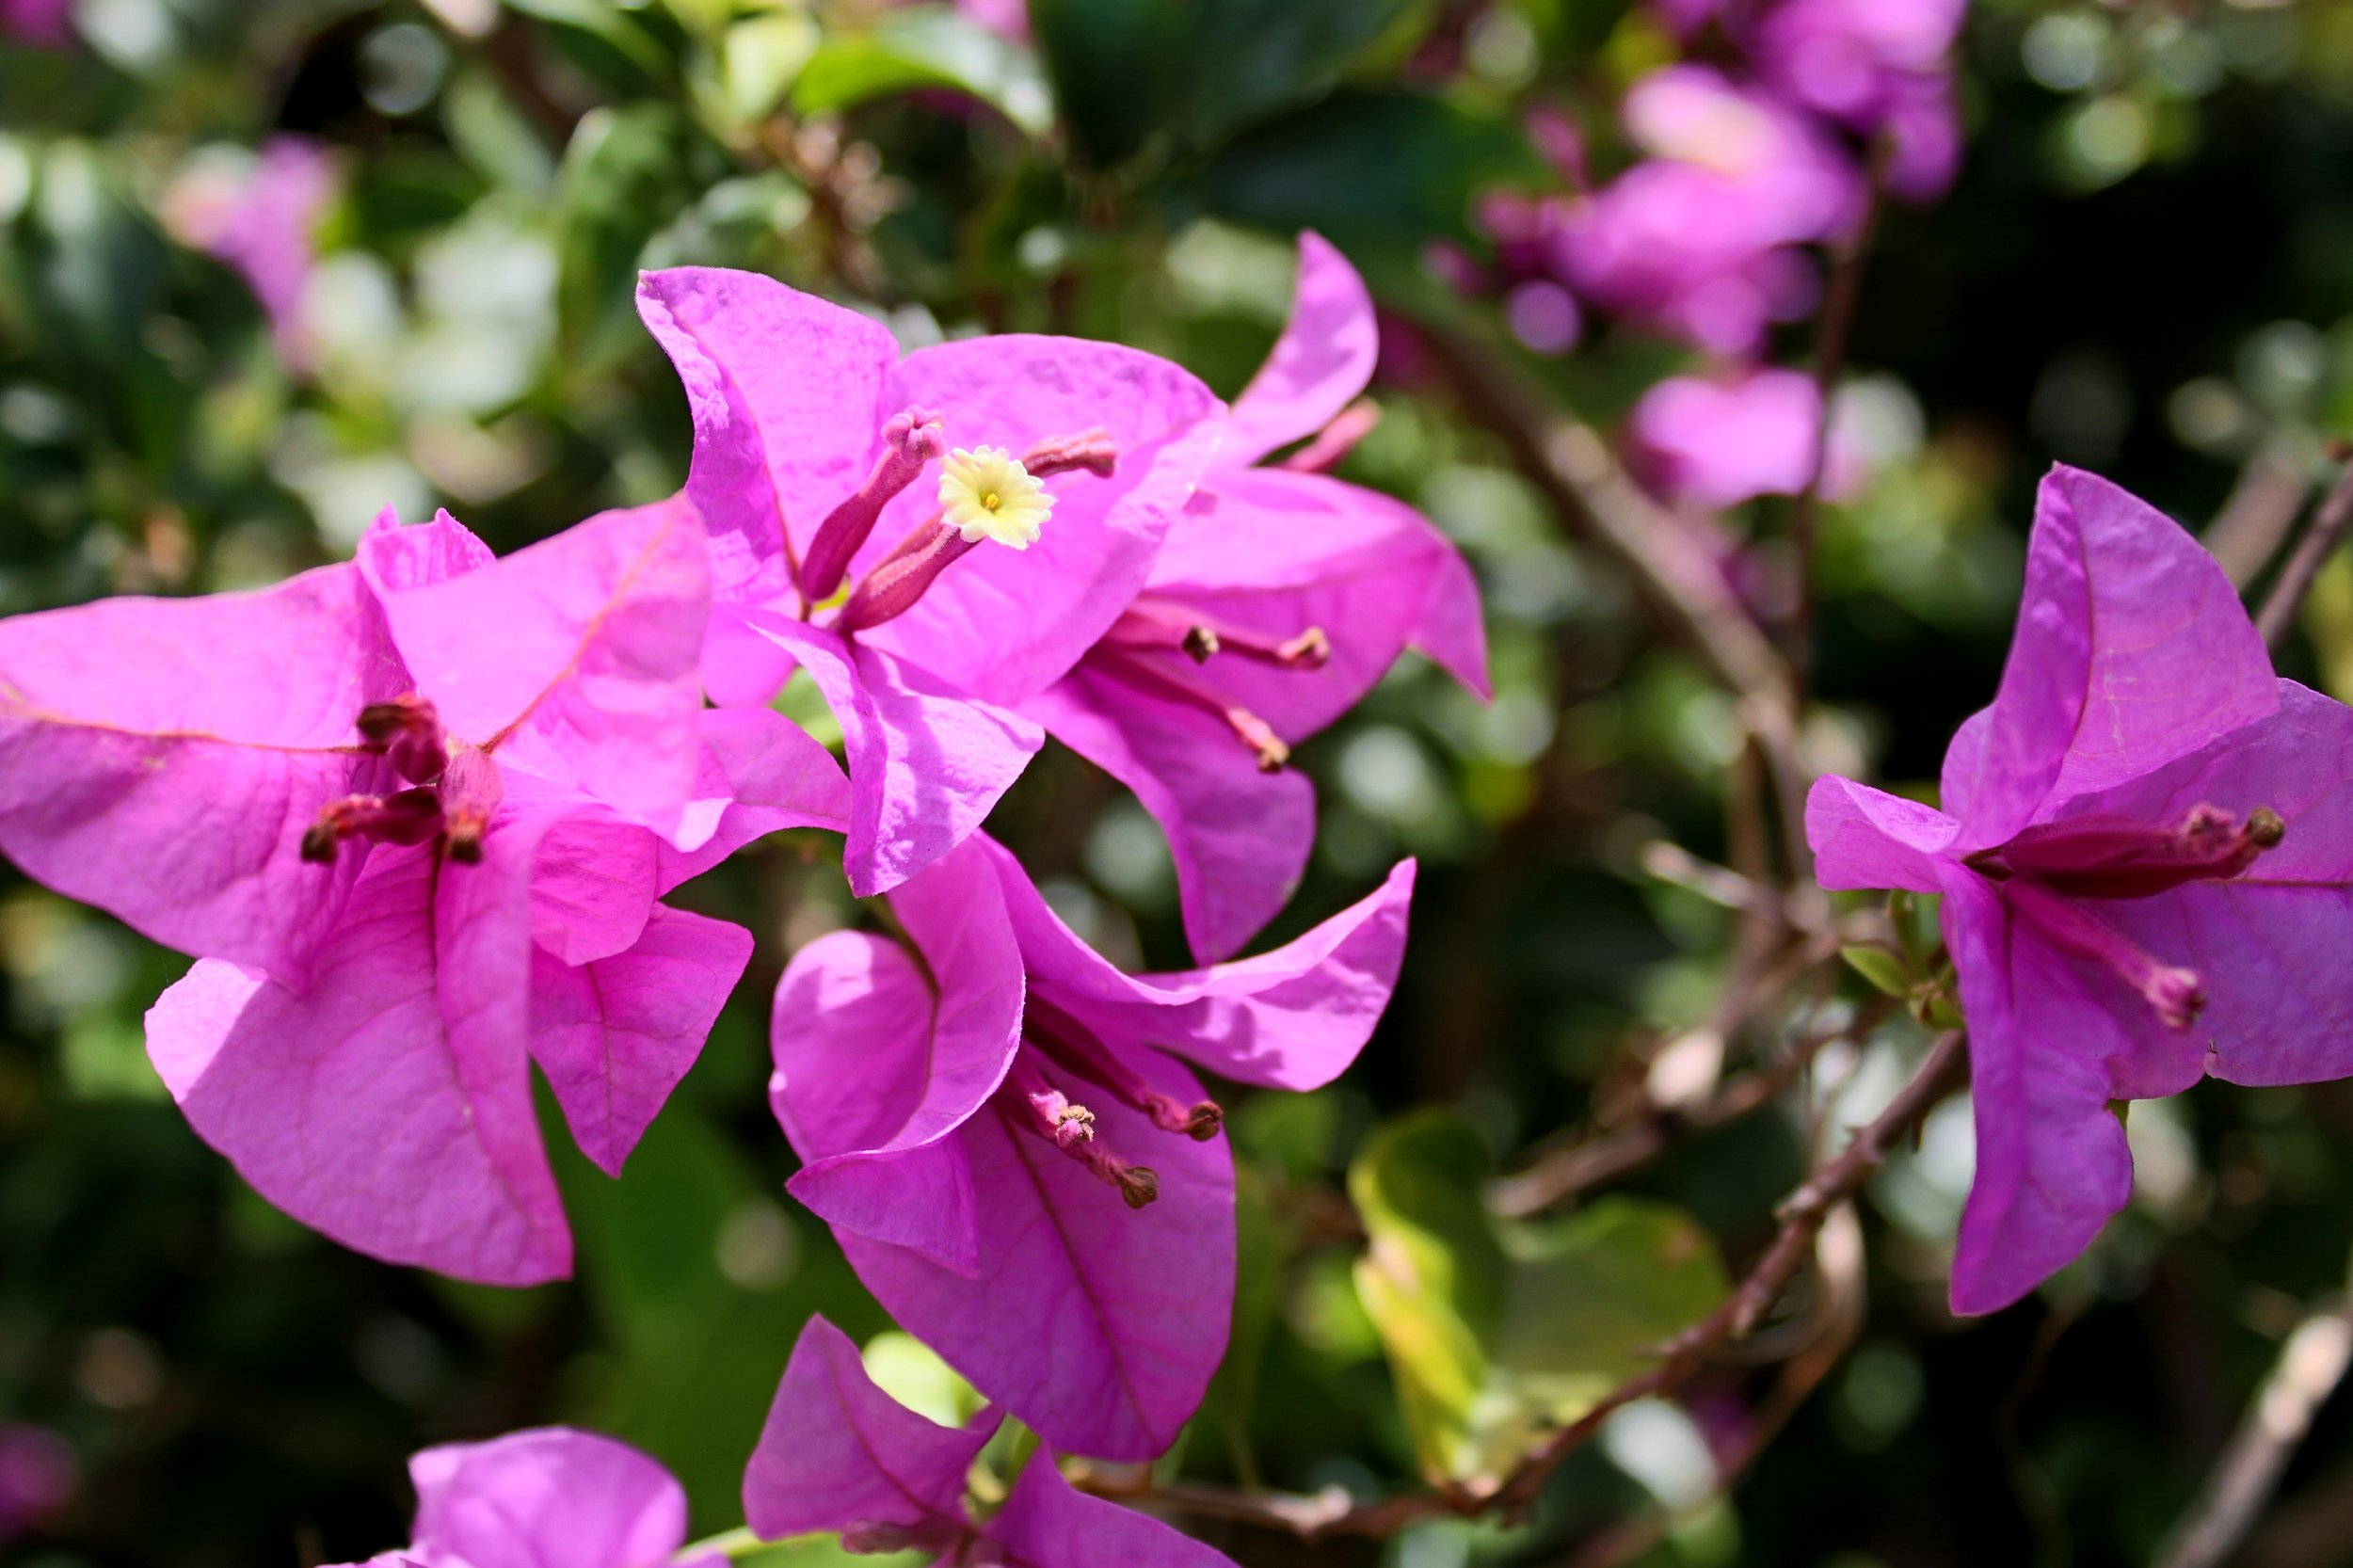 Bougainvillea - I actually had no idea what a Bougainvillea flower looked like, so here's a picture of the flower. The ink actually matches the color pretty well.